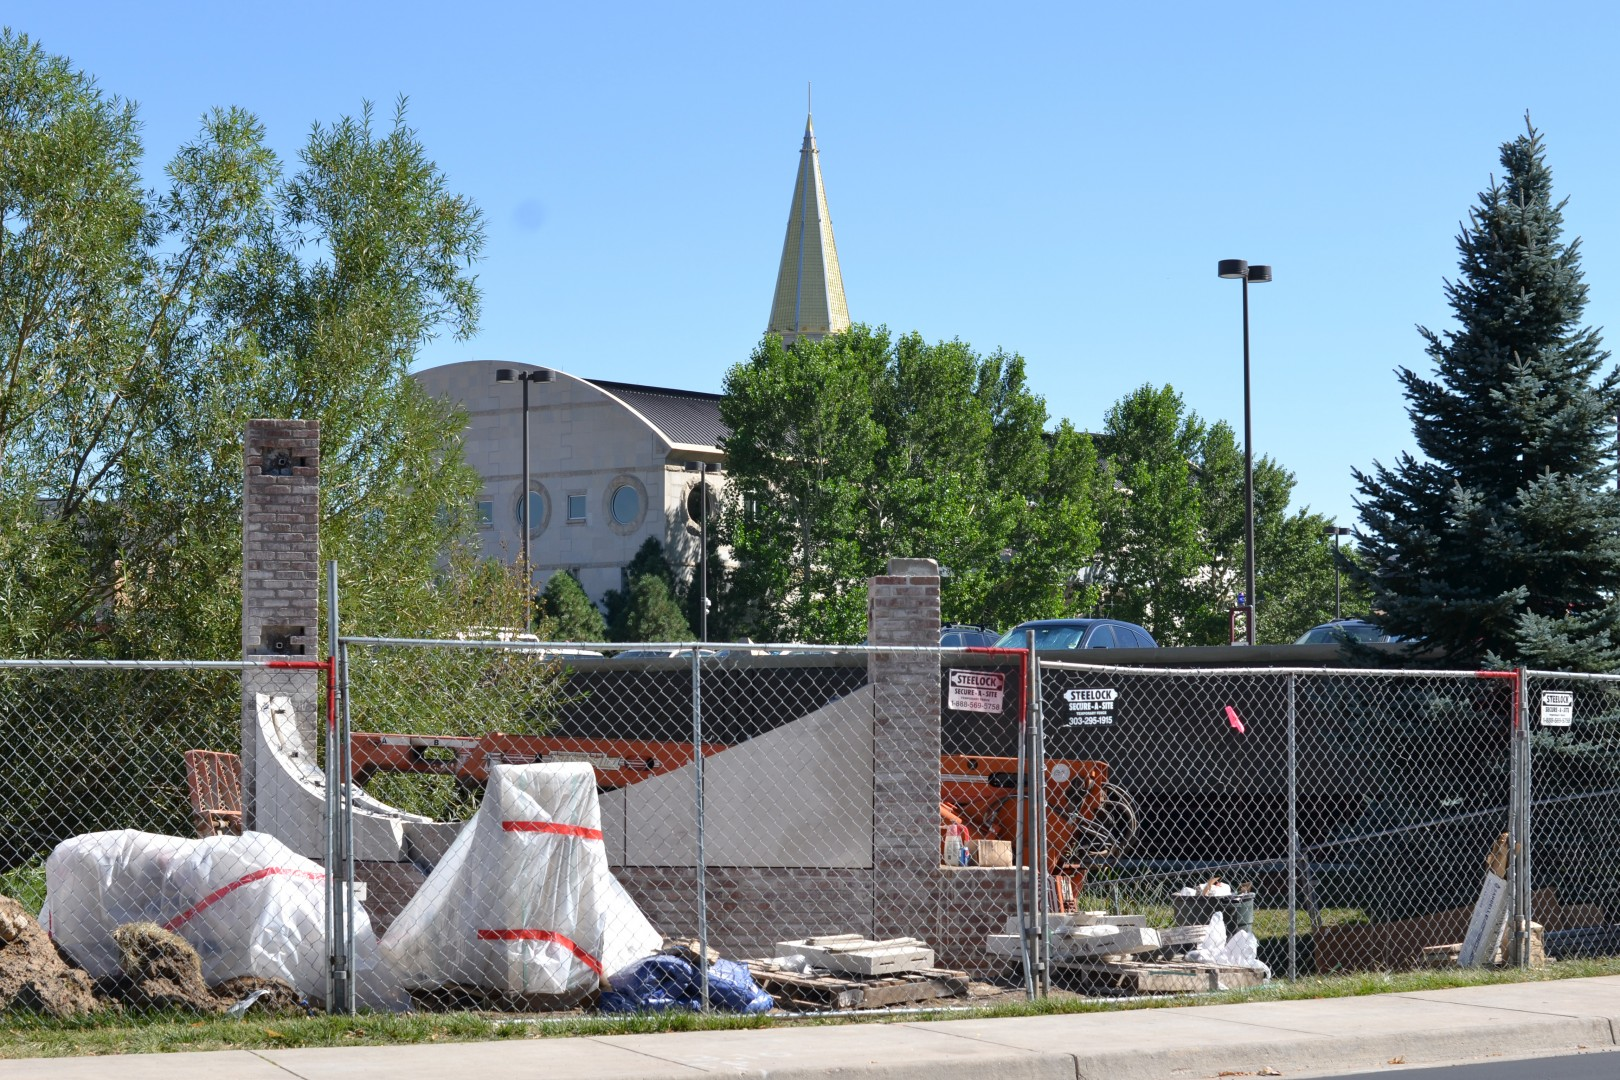 Over the summer, construction began on a new sign off of Buchtel and High Streets which will replace the old University of Denver welcome sign. In preparation for the debate, this is one of  several sites of construction throughout the DU campus.